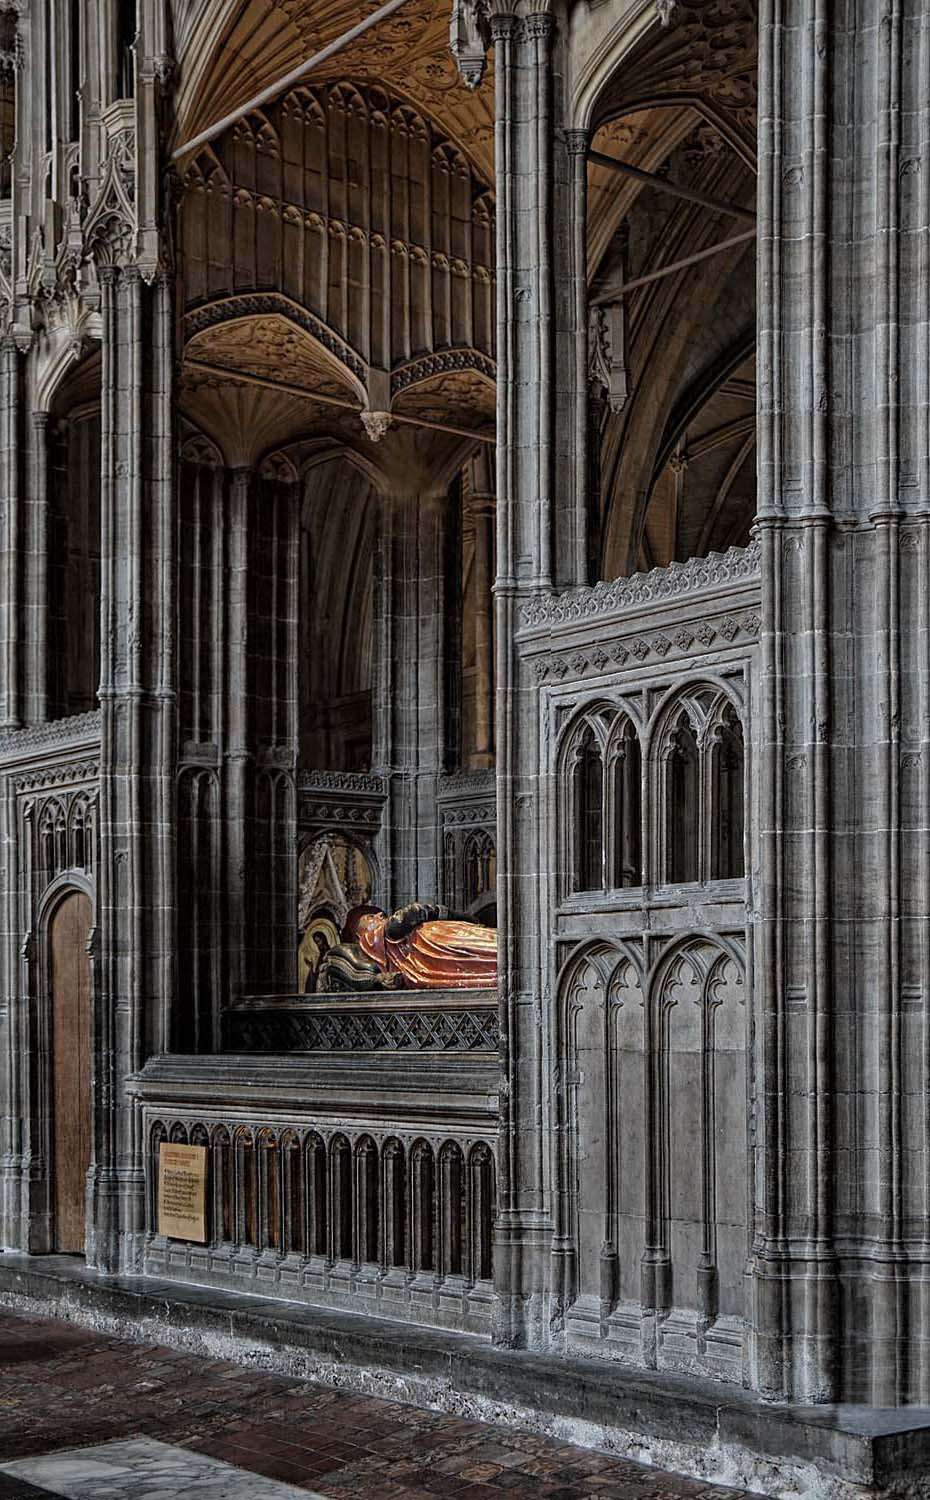 'Cardinal Beauforts Chantry Winchester' by Peter Read